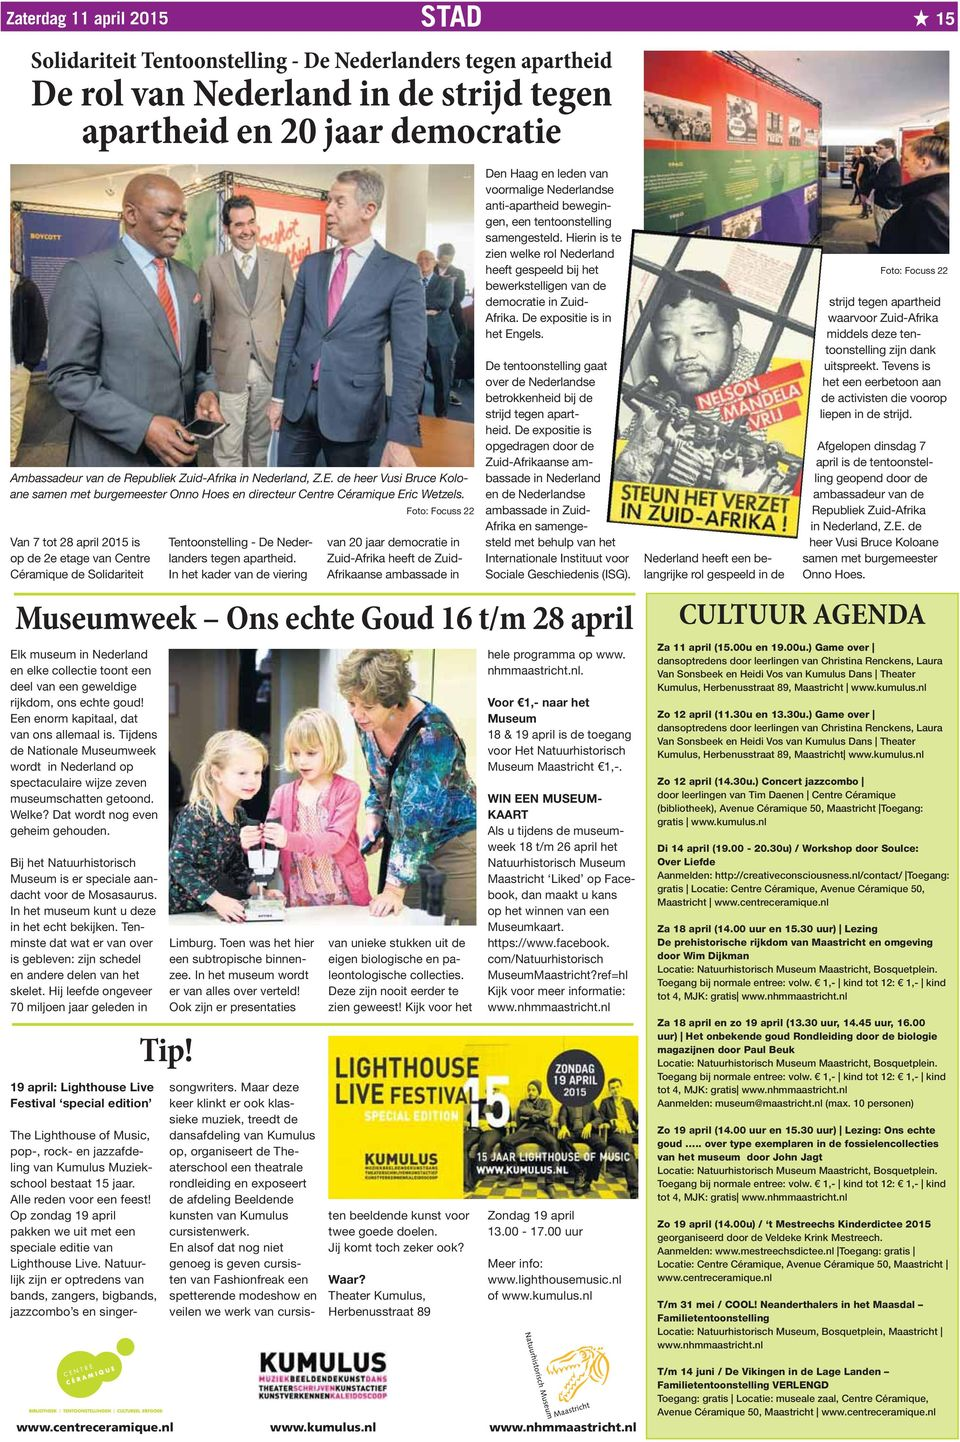 Foto: Focuss 22 Van 7 tot 28 april 2015 is op de 2e etage van Centre Céramique de Solidariteit Elk museum in Nederland en elke collectie toont een deel van een geweldige rijkdom, ons echte goud!